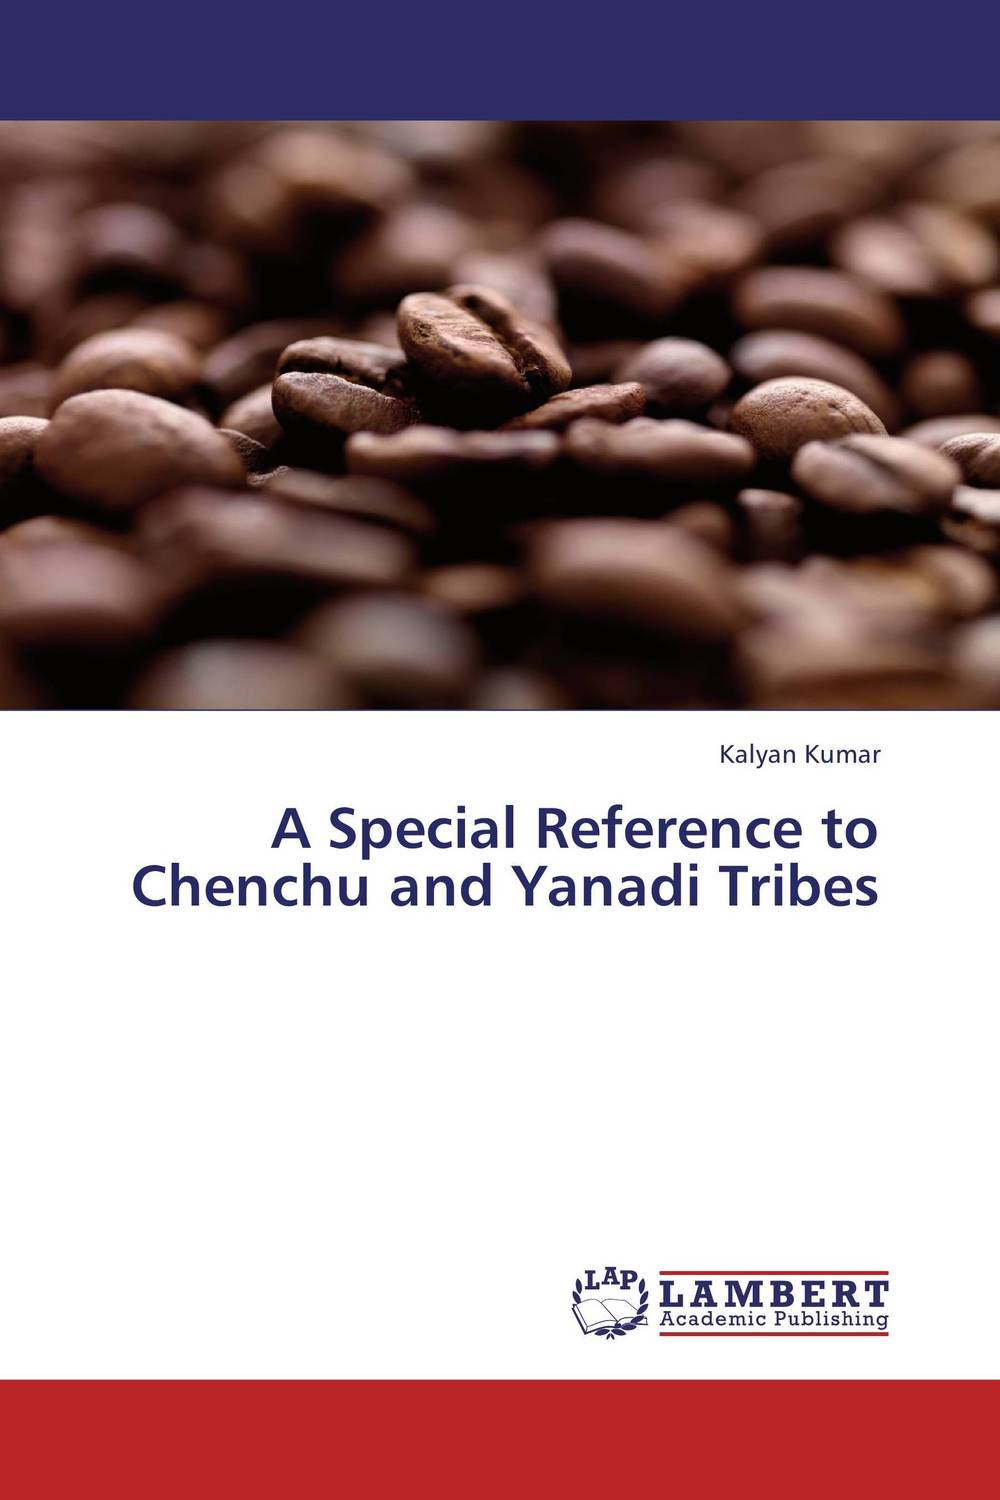 A Special Reference to Chenchu and Yanadi Tribes ngos